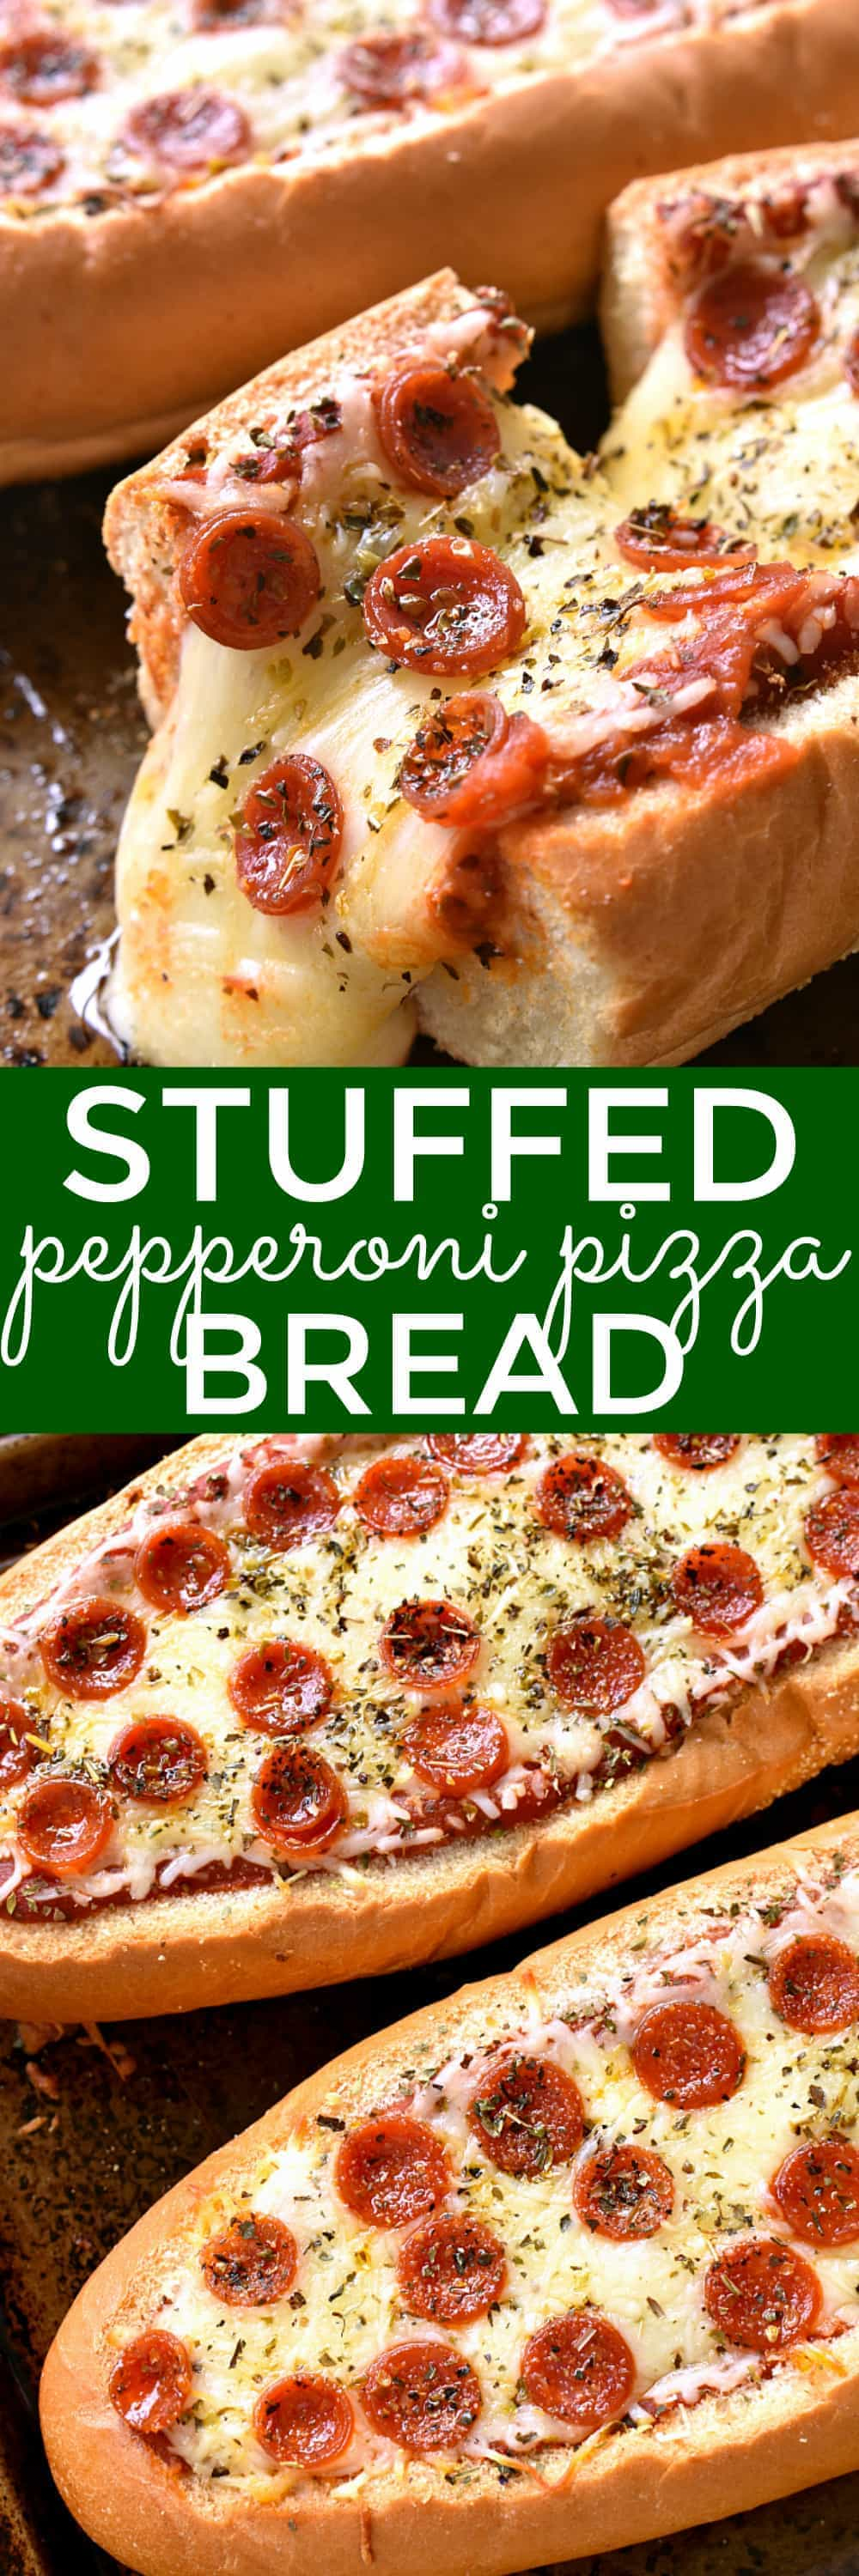 This Stuffed Pepperoni Pizza Bread is the ULTIMATE easy comfort food! Perfect for weeknight dinners, game days, sleepovers, or parties...and it doubles as an appetizer!